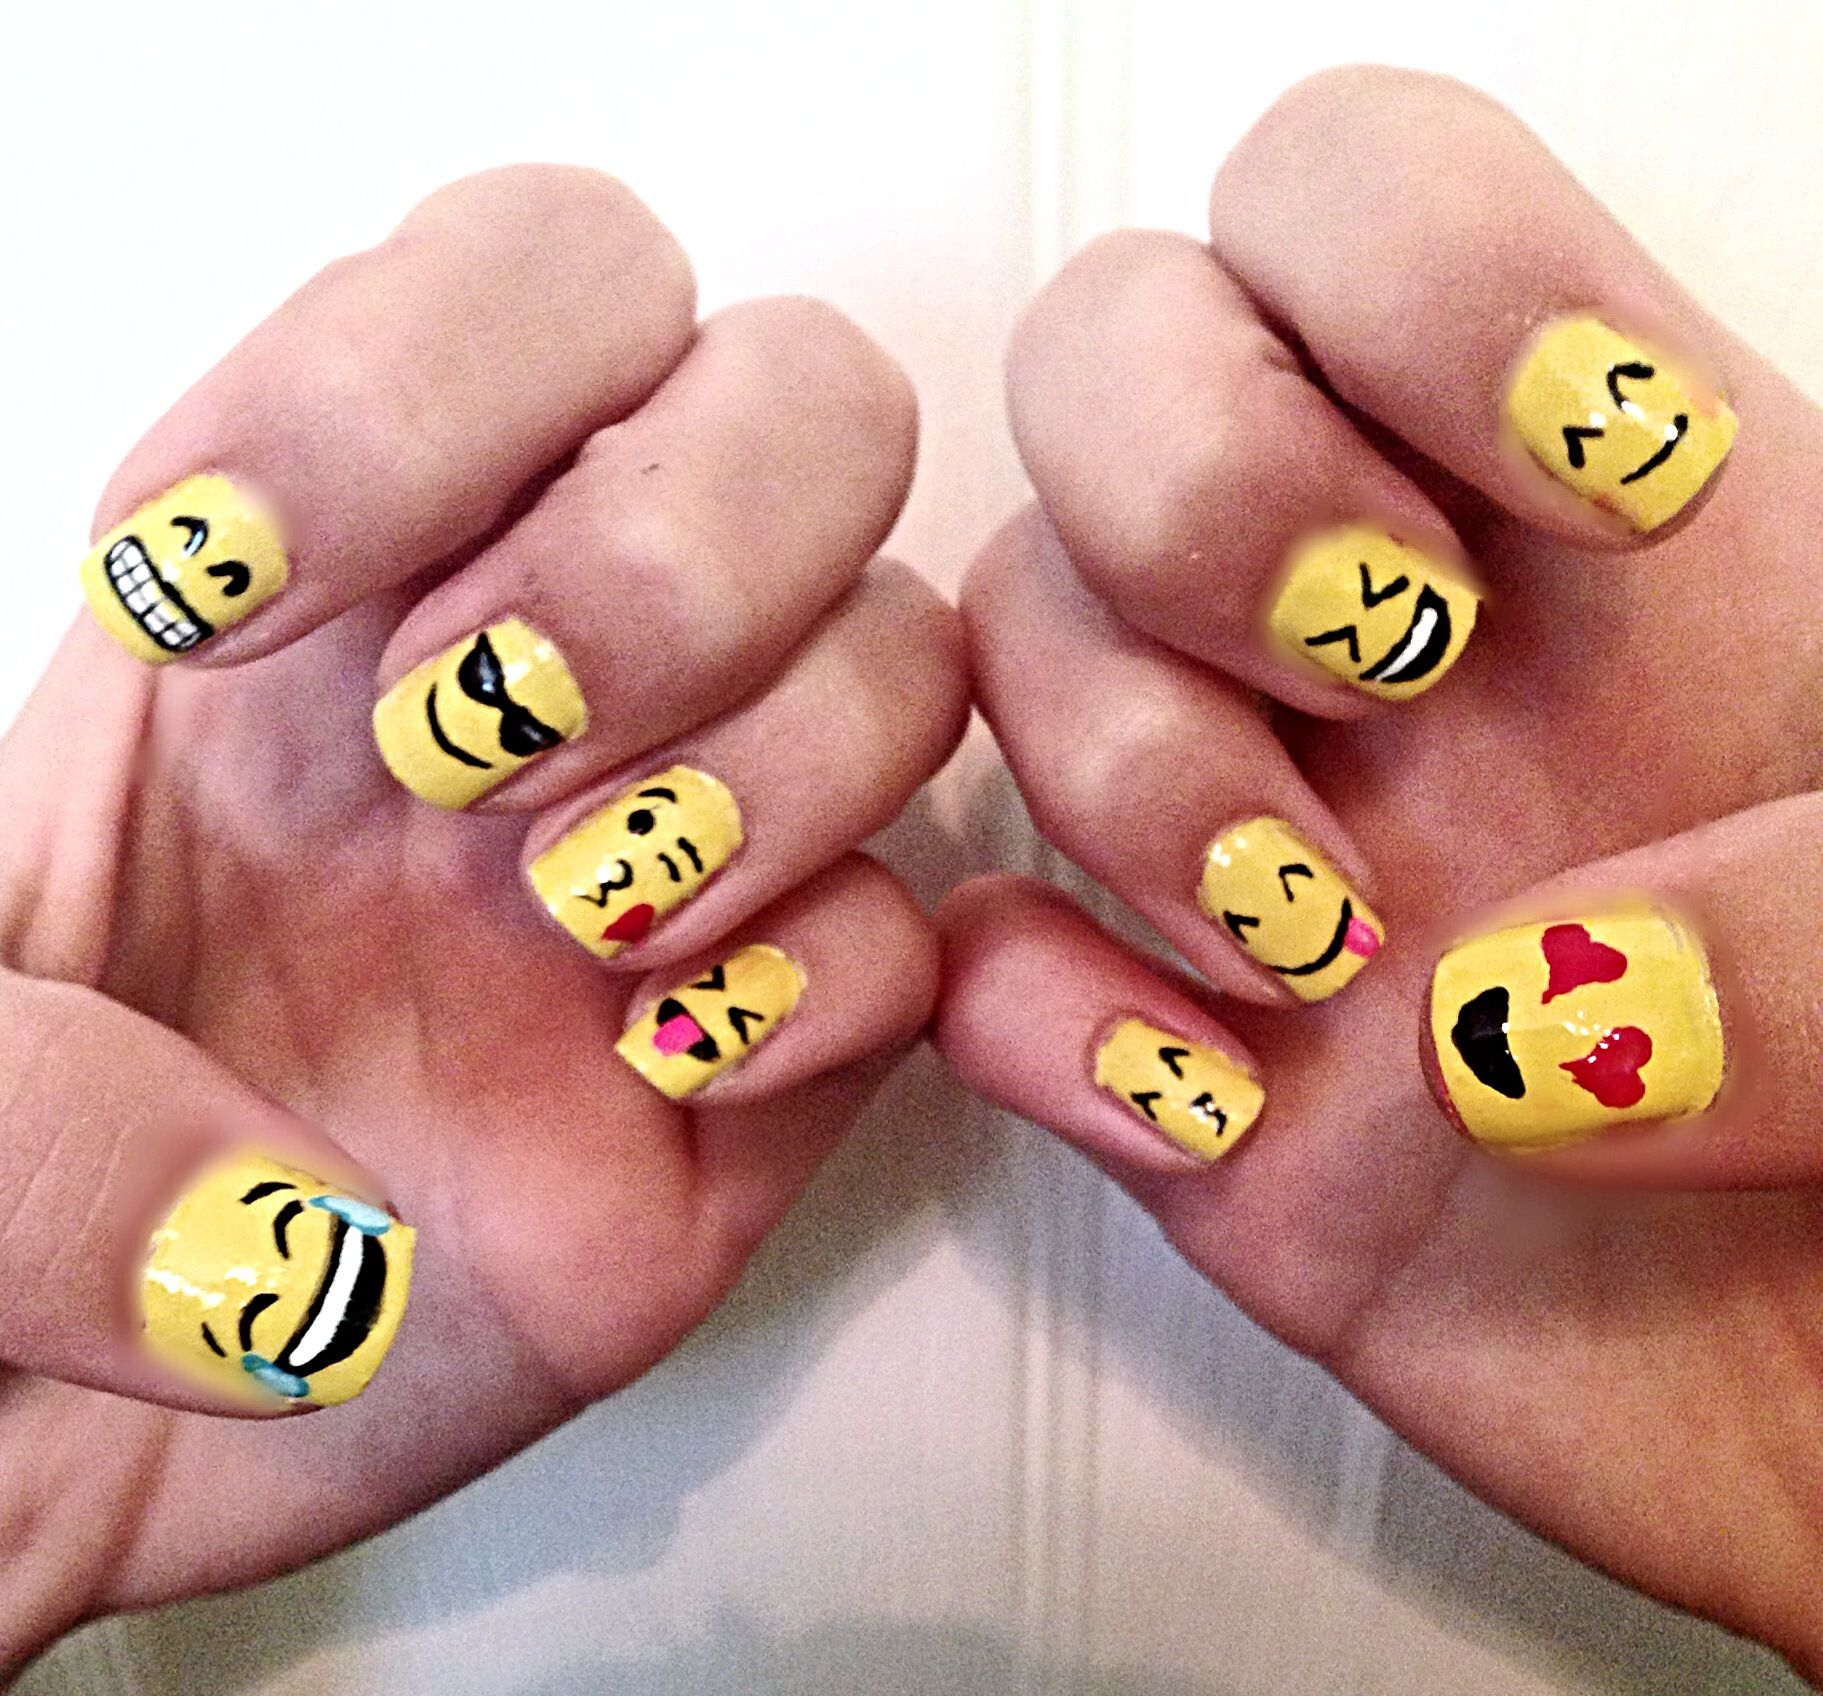 Emoji nails | My Nail Art | Pinterest | Emoji nails, Emoji and ...